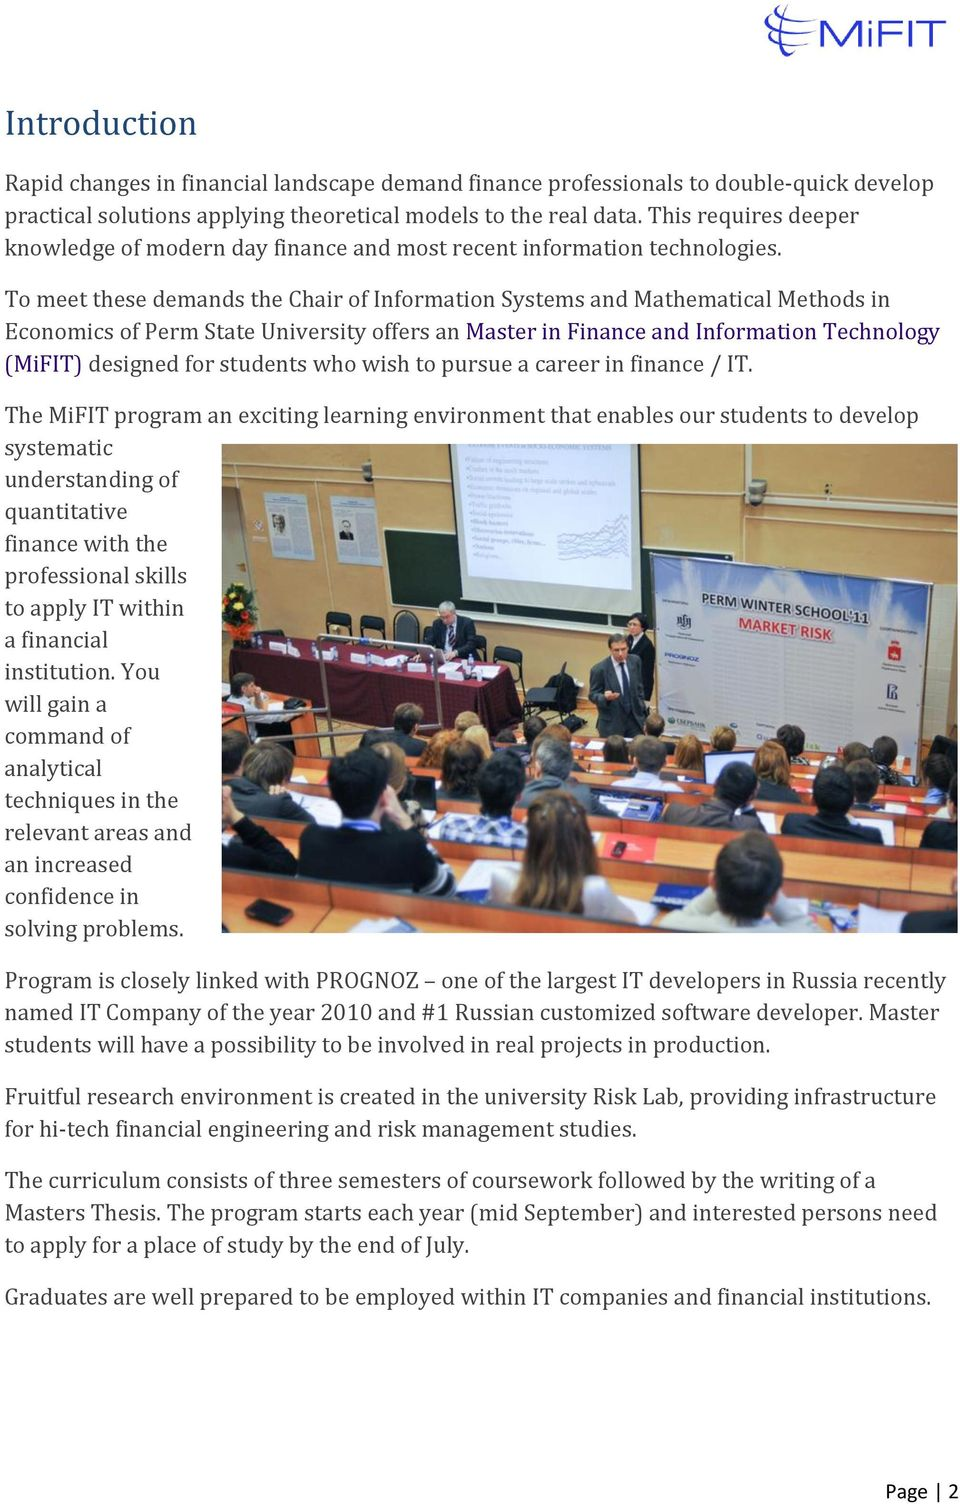 To meet these demands the Chair of Information Systems and Mathematical Methods in Economics of Perm State University offers an Master in Finance and Information Technology (MiFIT) designed for